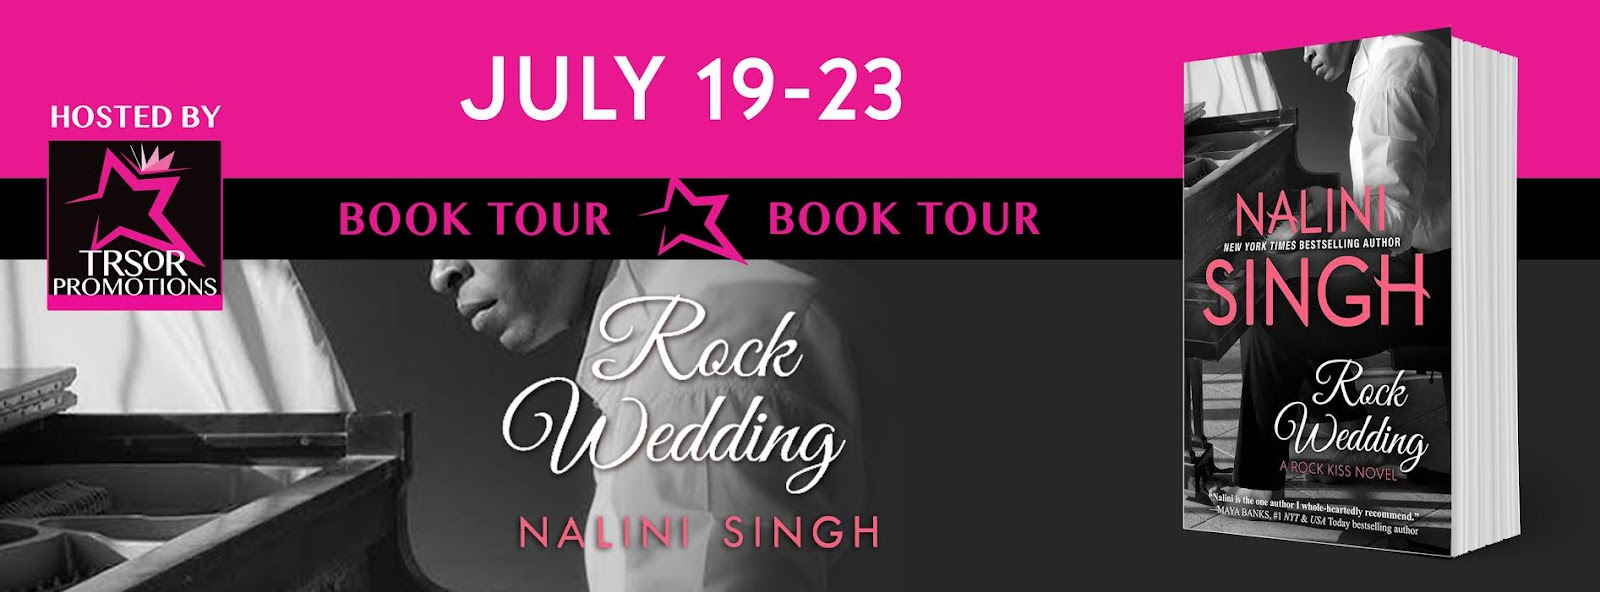 rock wedding book tour.jpg